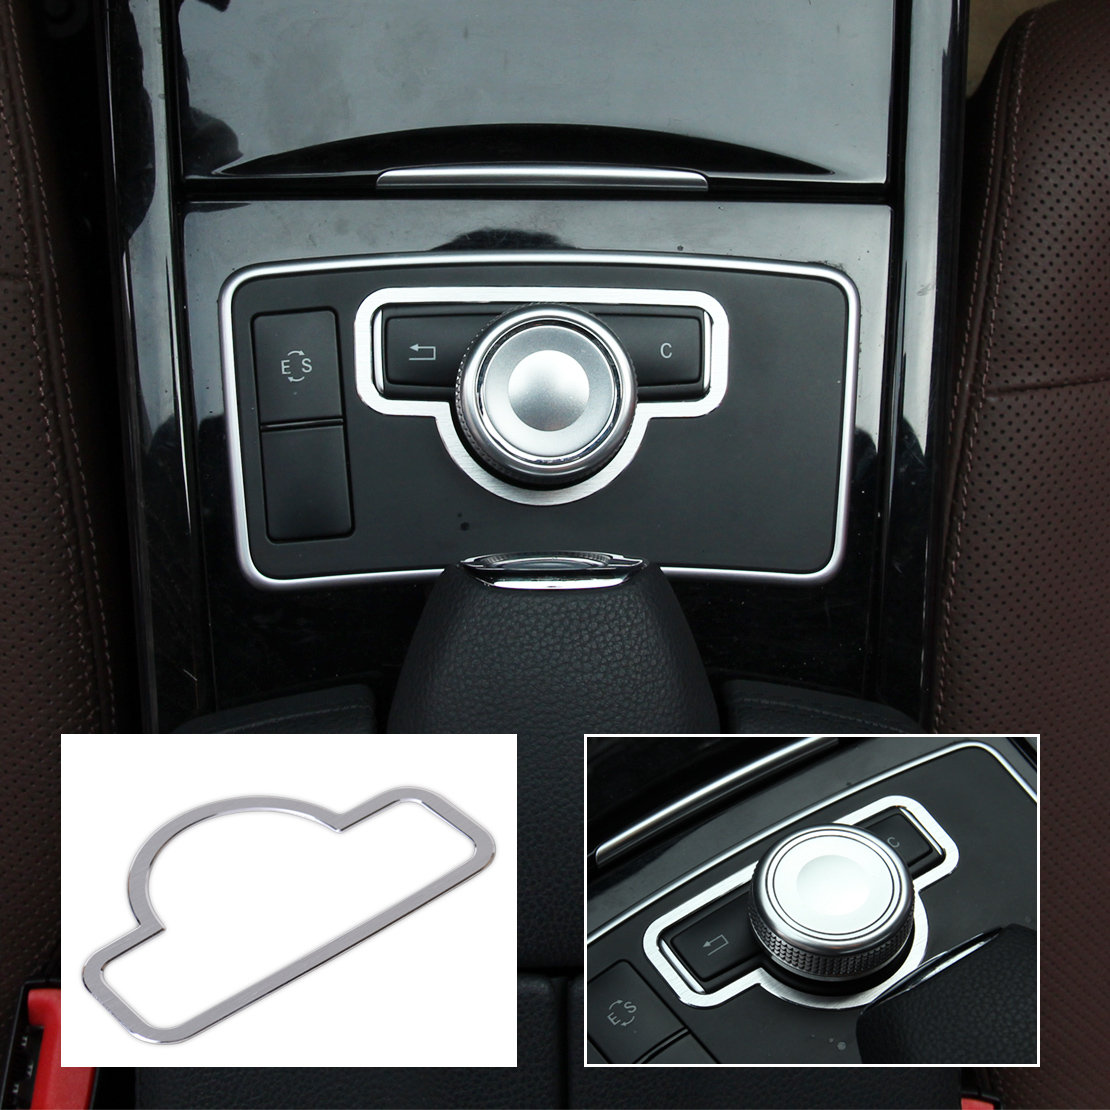 beler Interior Console Panel Center Console Multimedia Button Switch Cover Trim for BENZ C E GLK CLS Class W204 W212 W218 X204